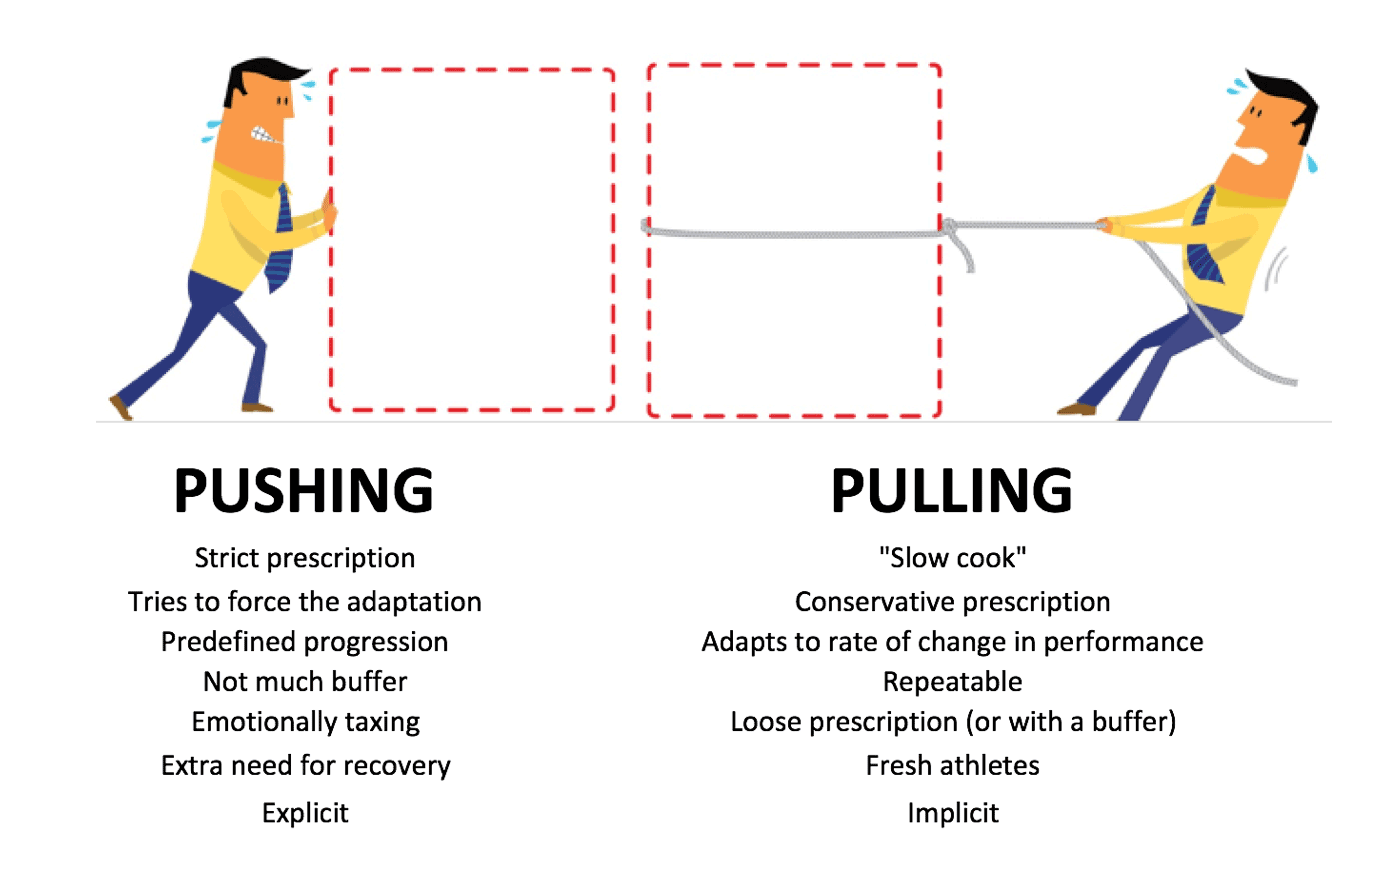 pushing vs pulling